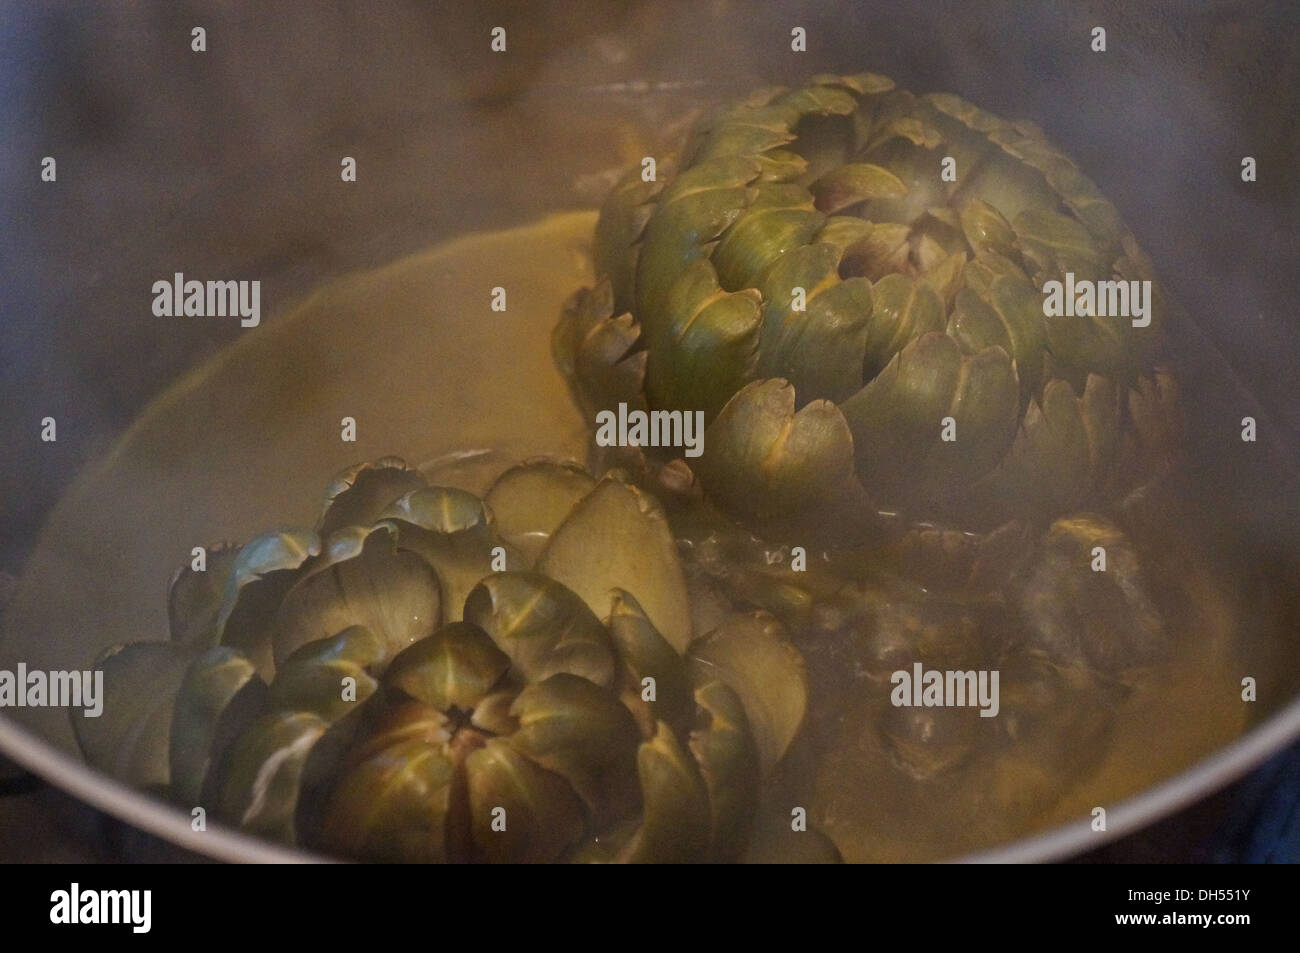 Boil  artichoke in water - Stock Image